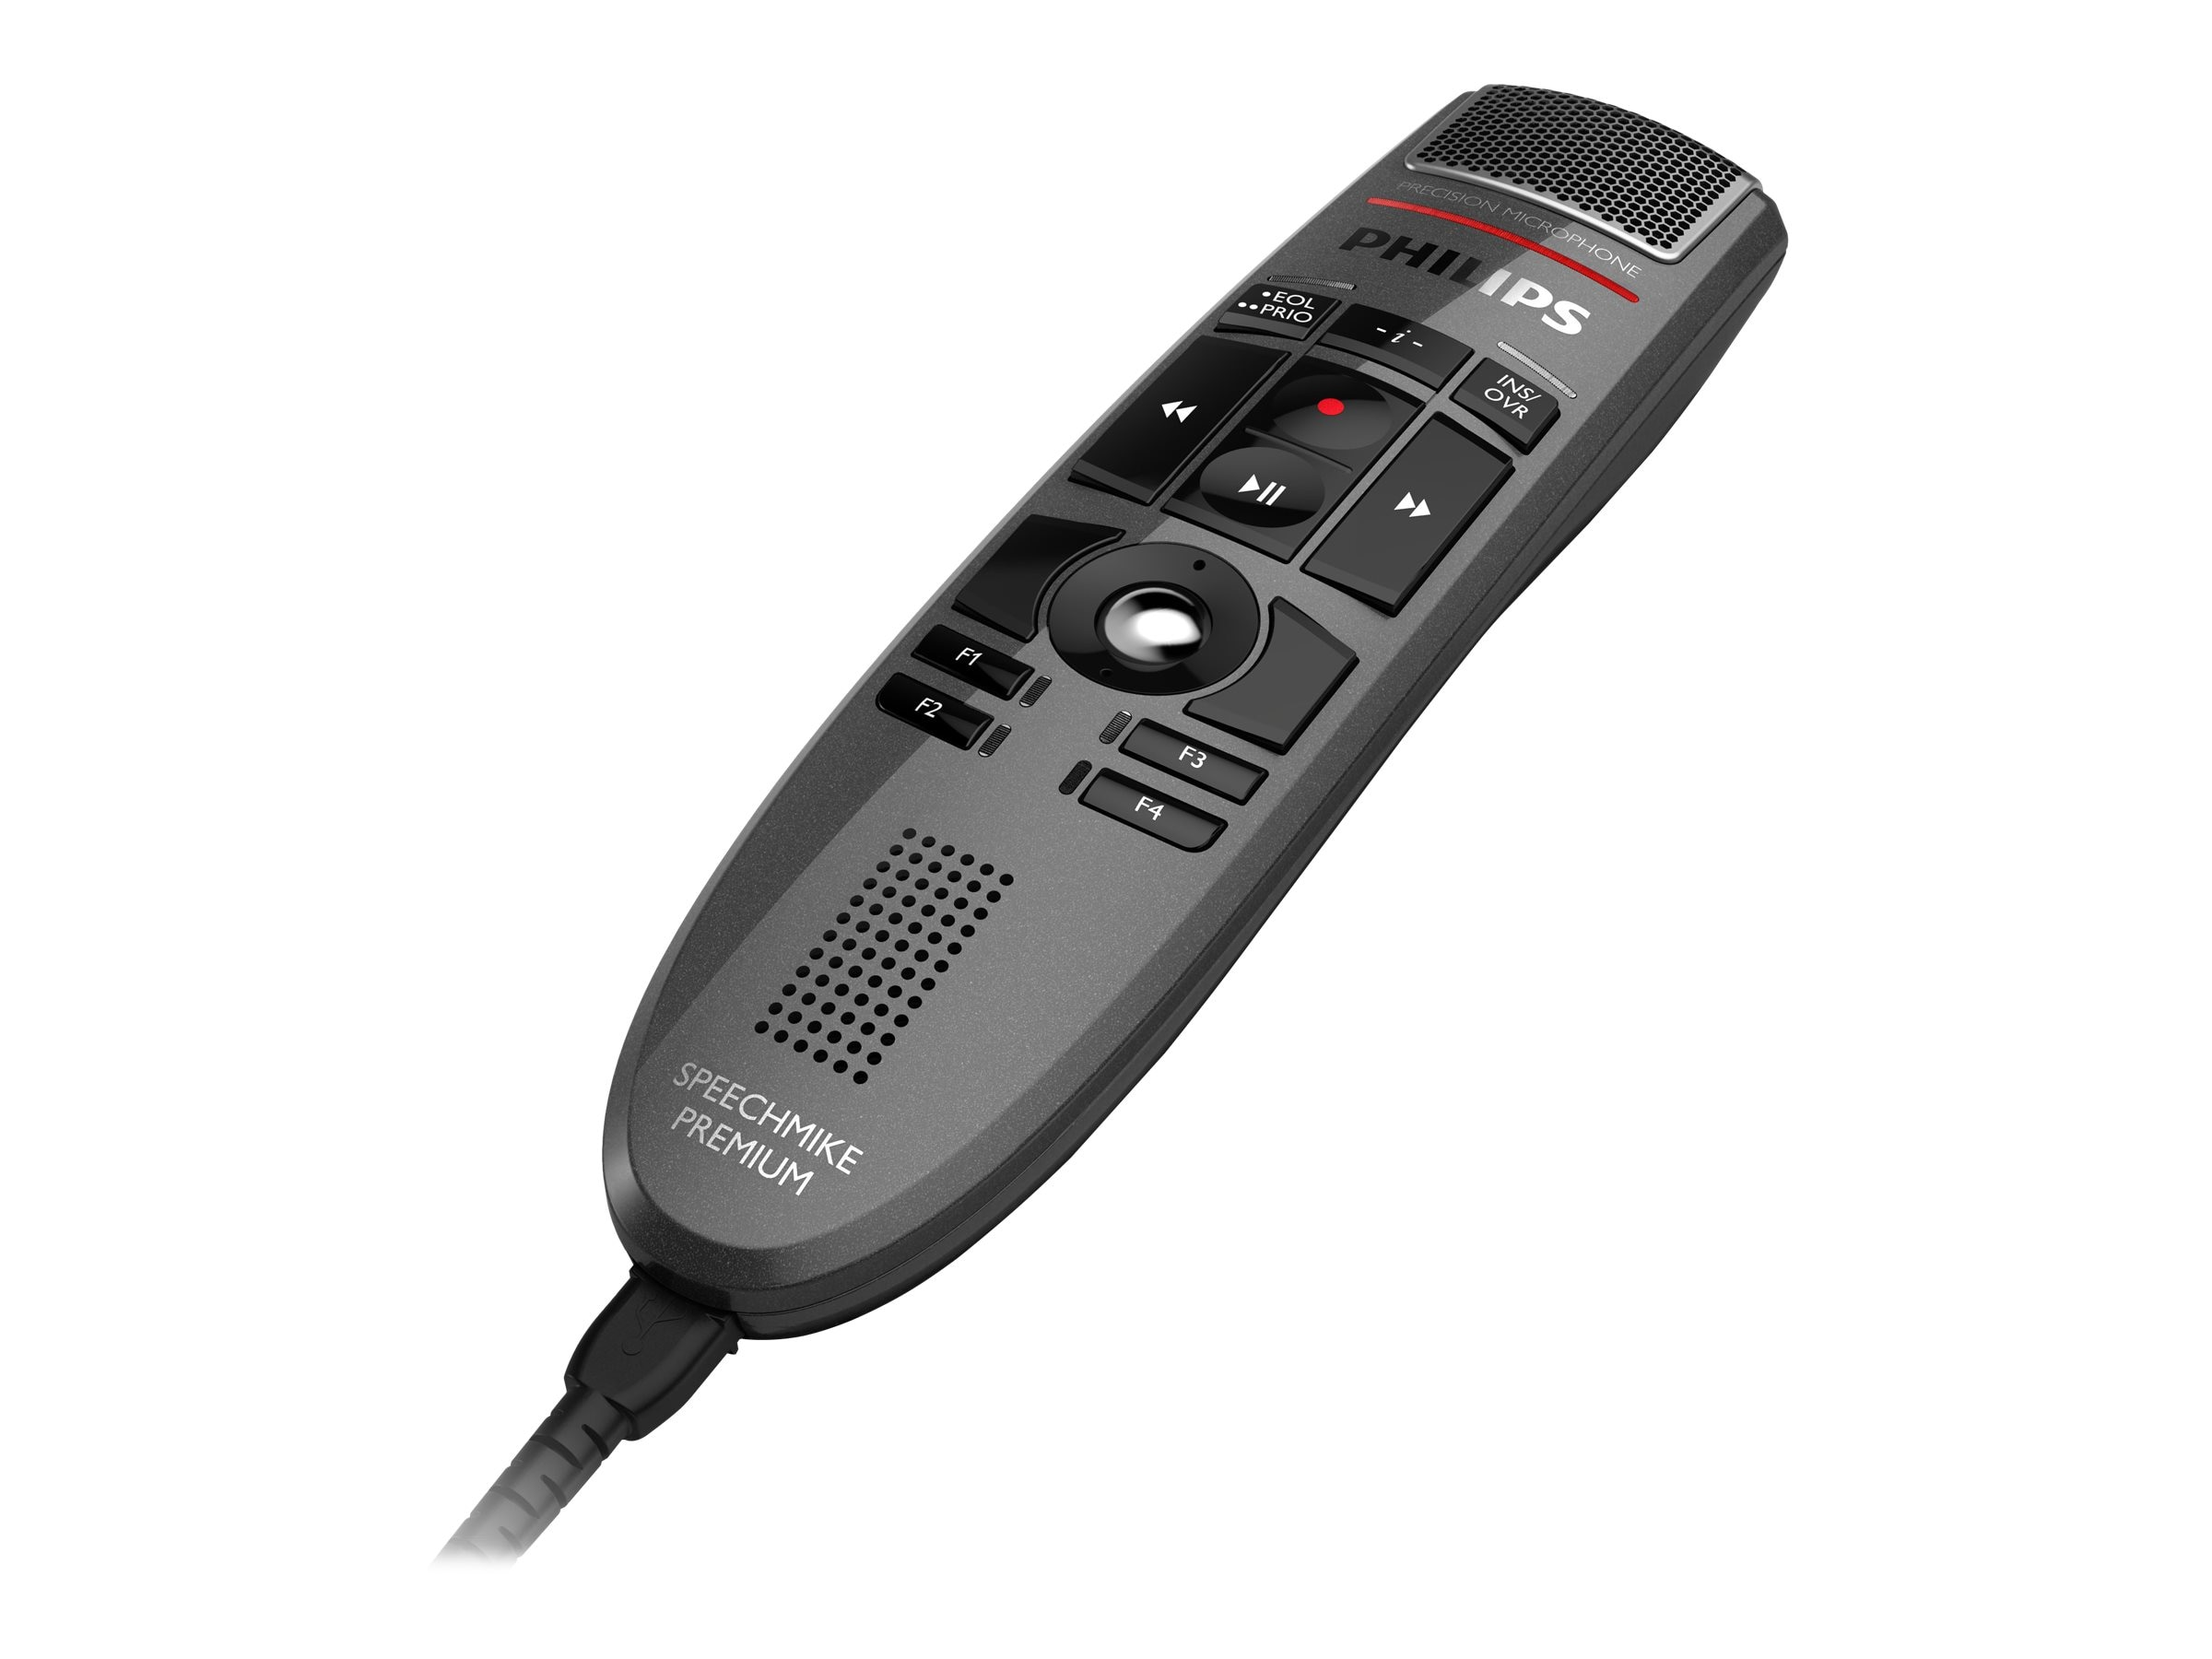 Philips SpeechMike Premium USB Dictation Microphone Push Button Operation, LFH-3500, 14852175, Microphones & Accessories